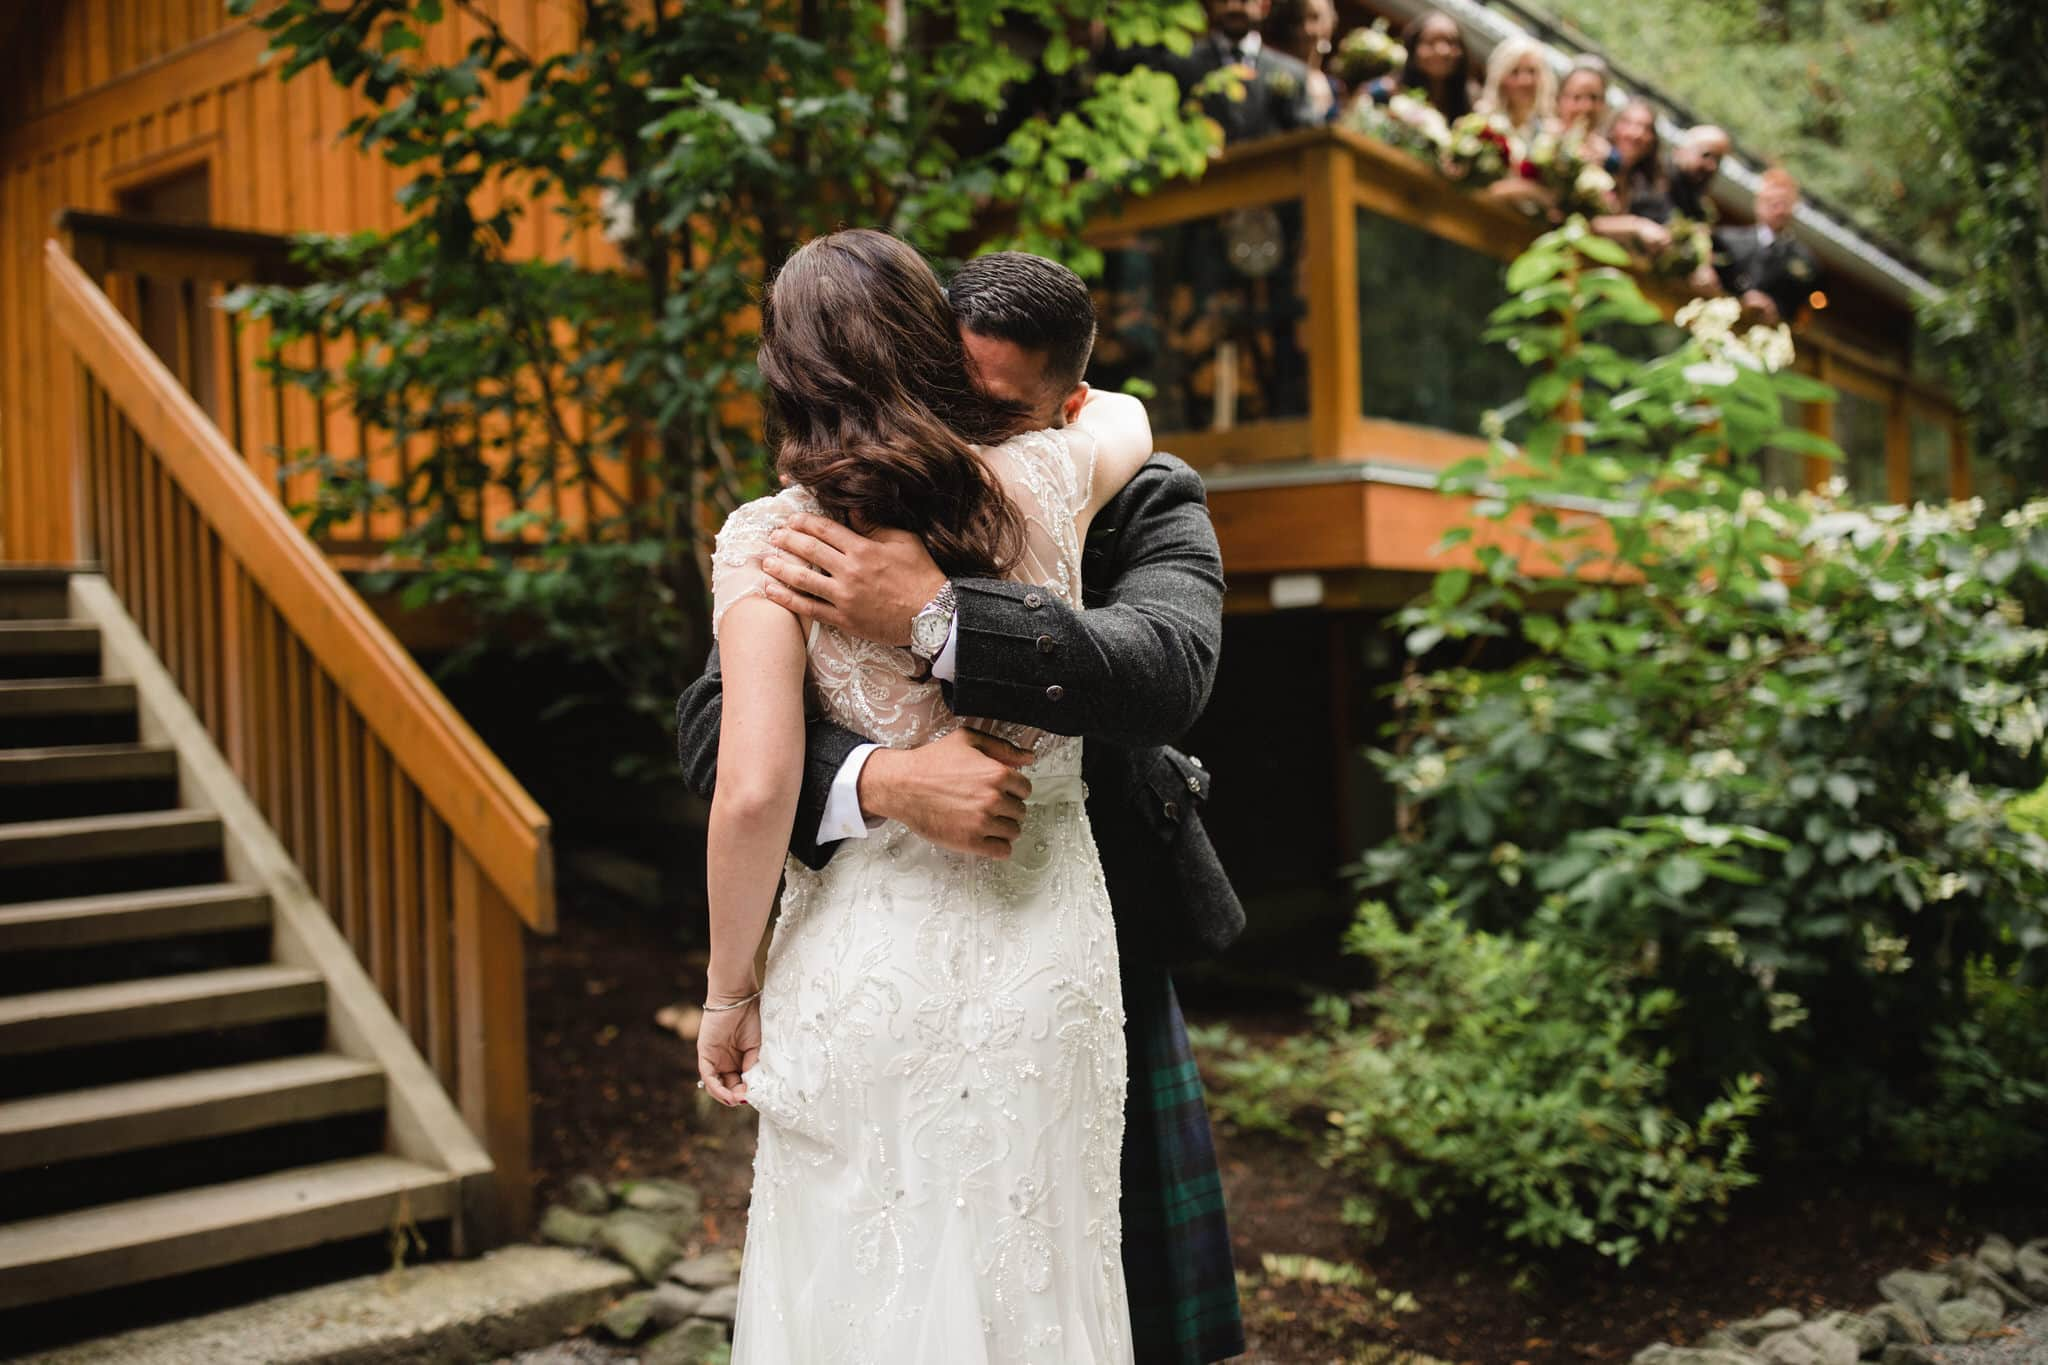 Bride and groom hug after first look at The Brew Creek Centre in Whistler. Destination wedding photographer Brent Calis.